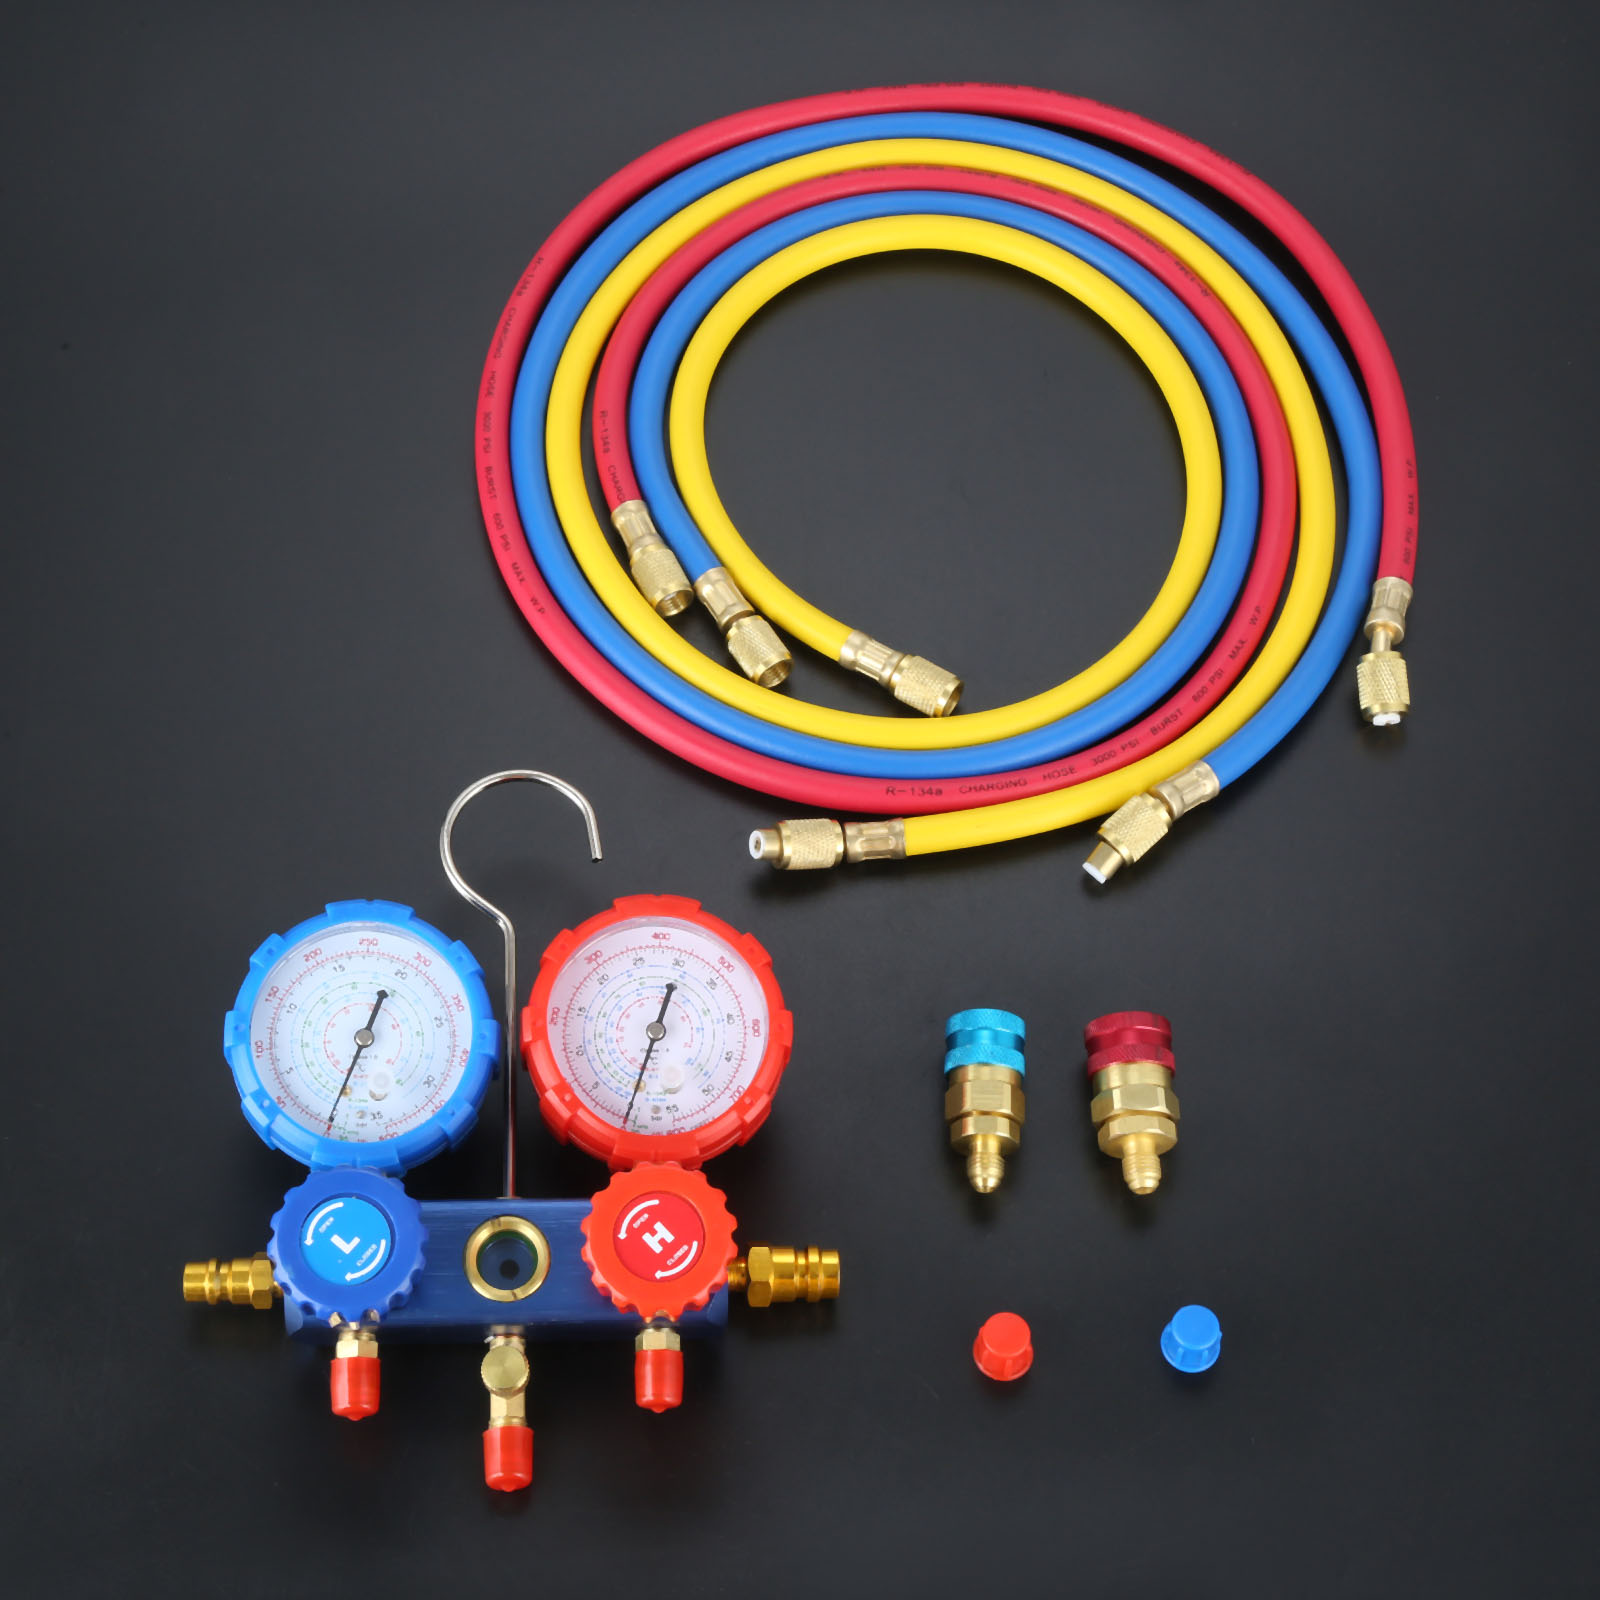 R134a R12 R22 R502 Manifold Gauge Set HVAC AC Refrigerant w/ 5ft Charging Hoses 36 Hoses R134 Quick Couplers+ACME Adapter 600Psi-in Air-conditioning Installation from Automobiles & Motorcycles